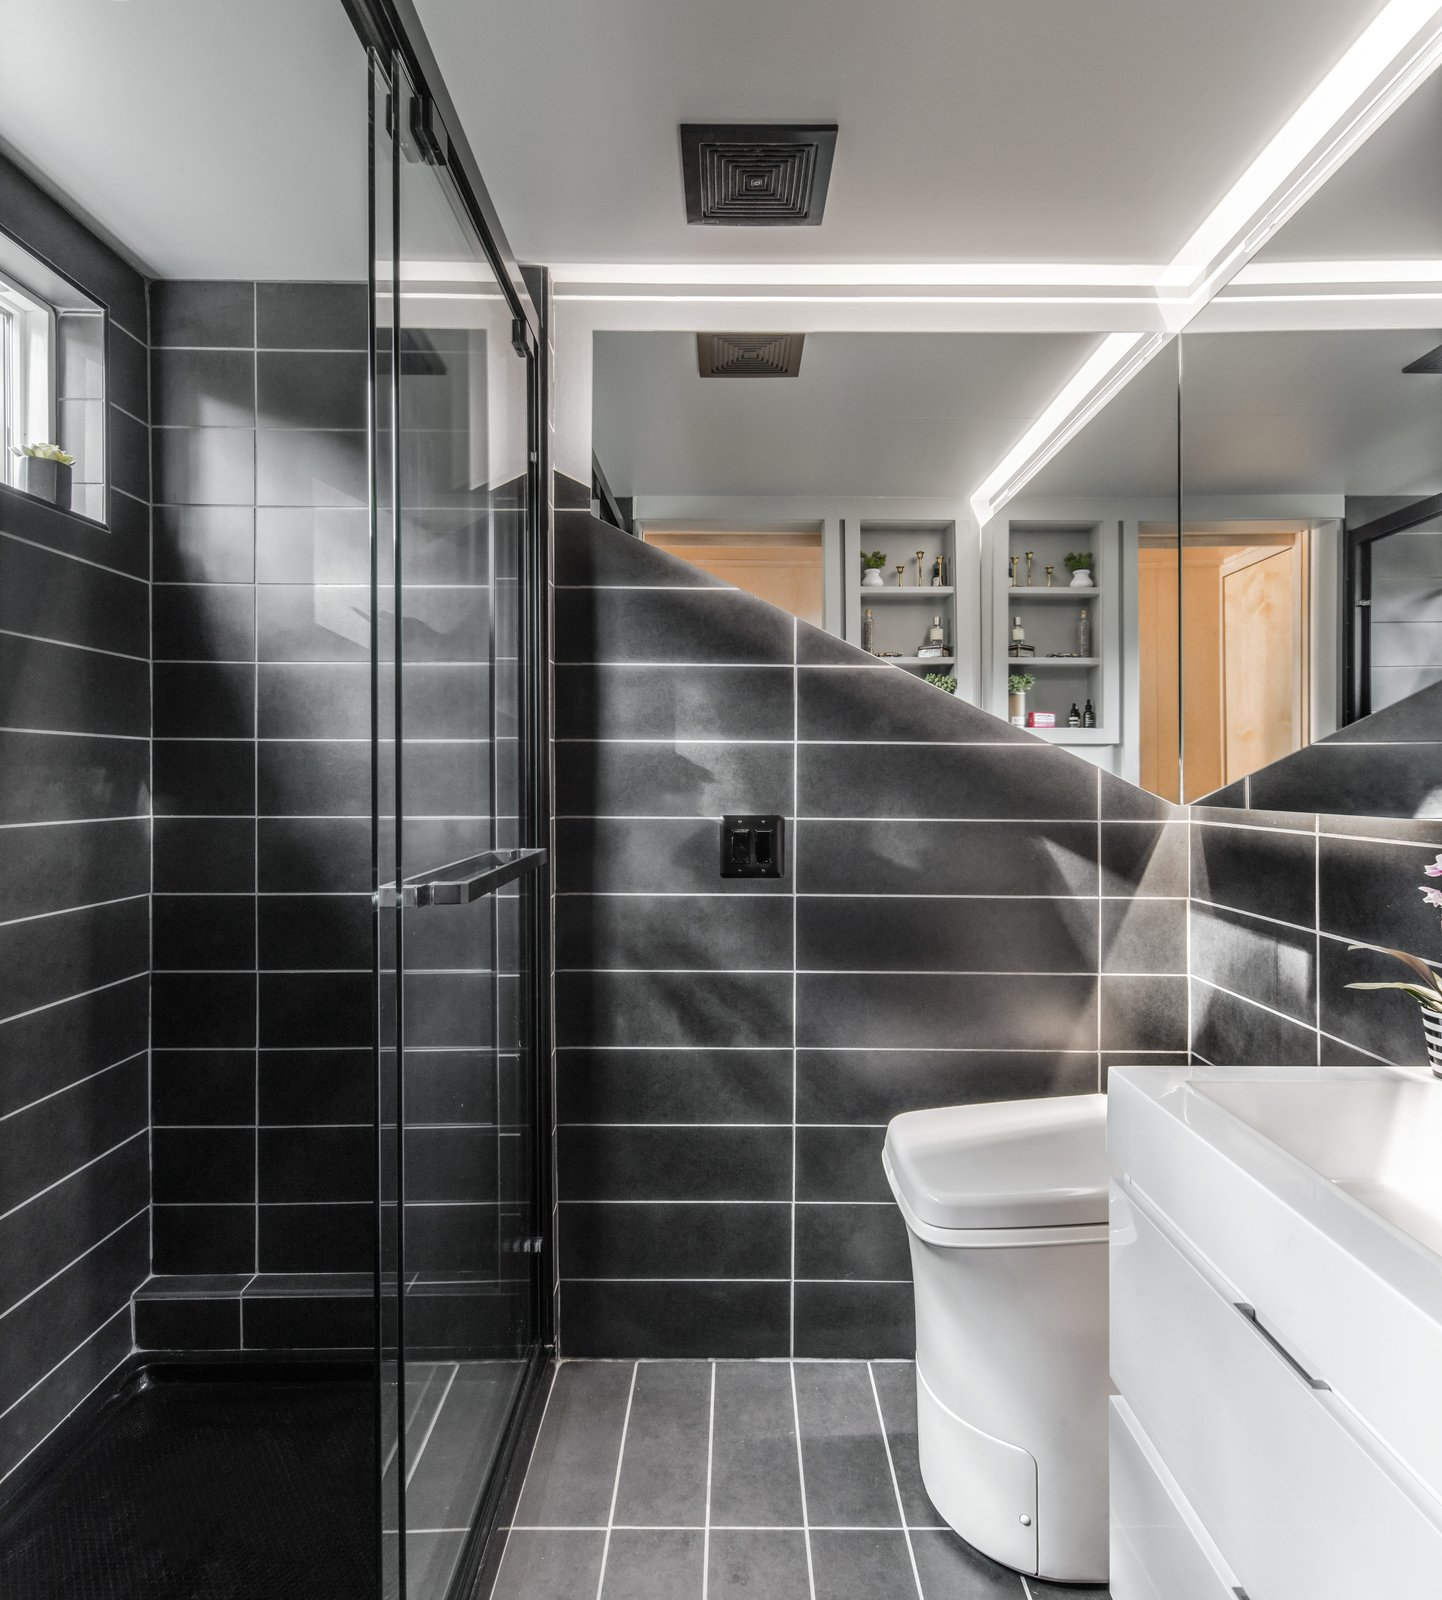 Orchid Tiny House bathroom with Cinderella incinerator toilet